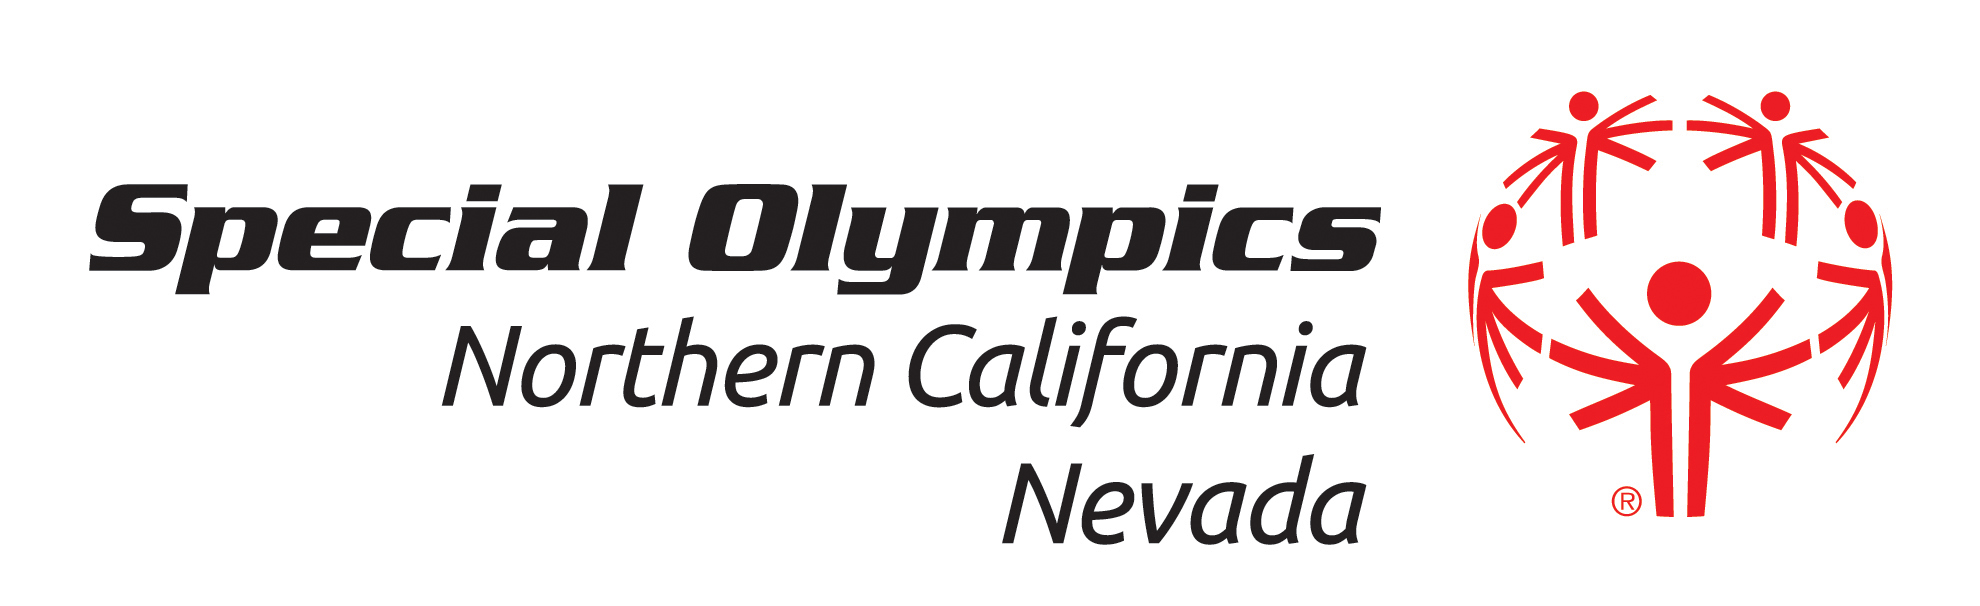 Special Olympics Northern California Nevada - Director of Corporate DevelopmentPleasant Hill, CA